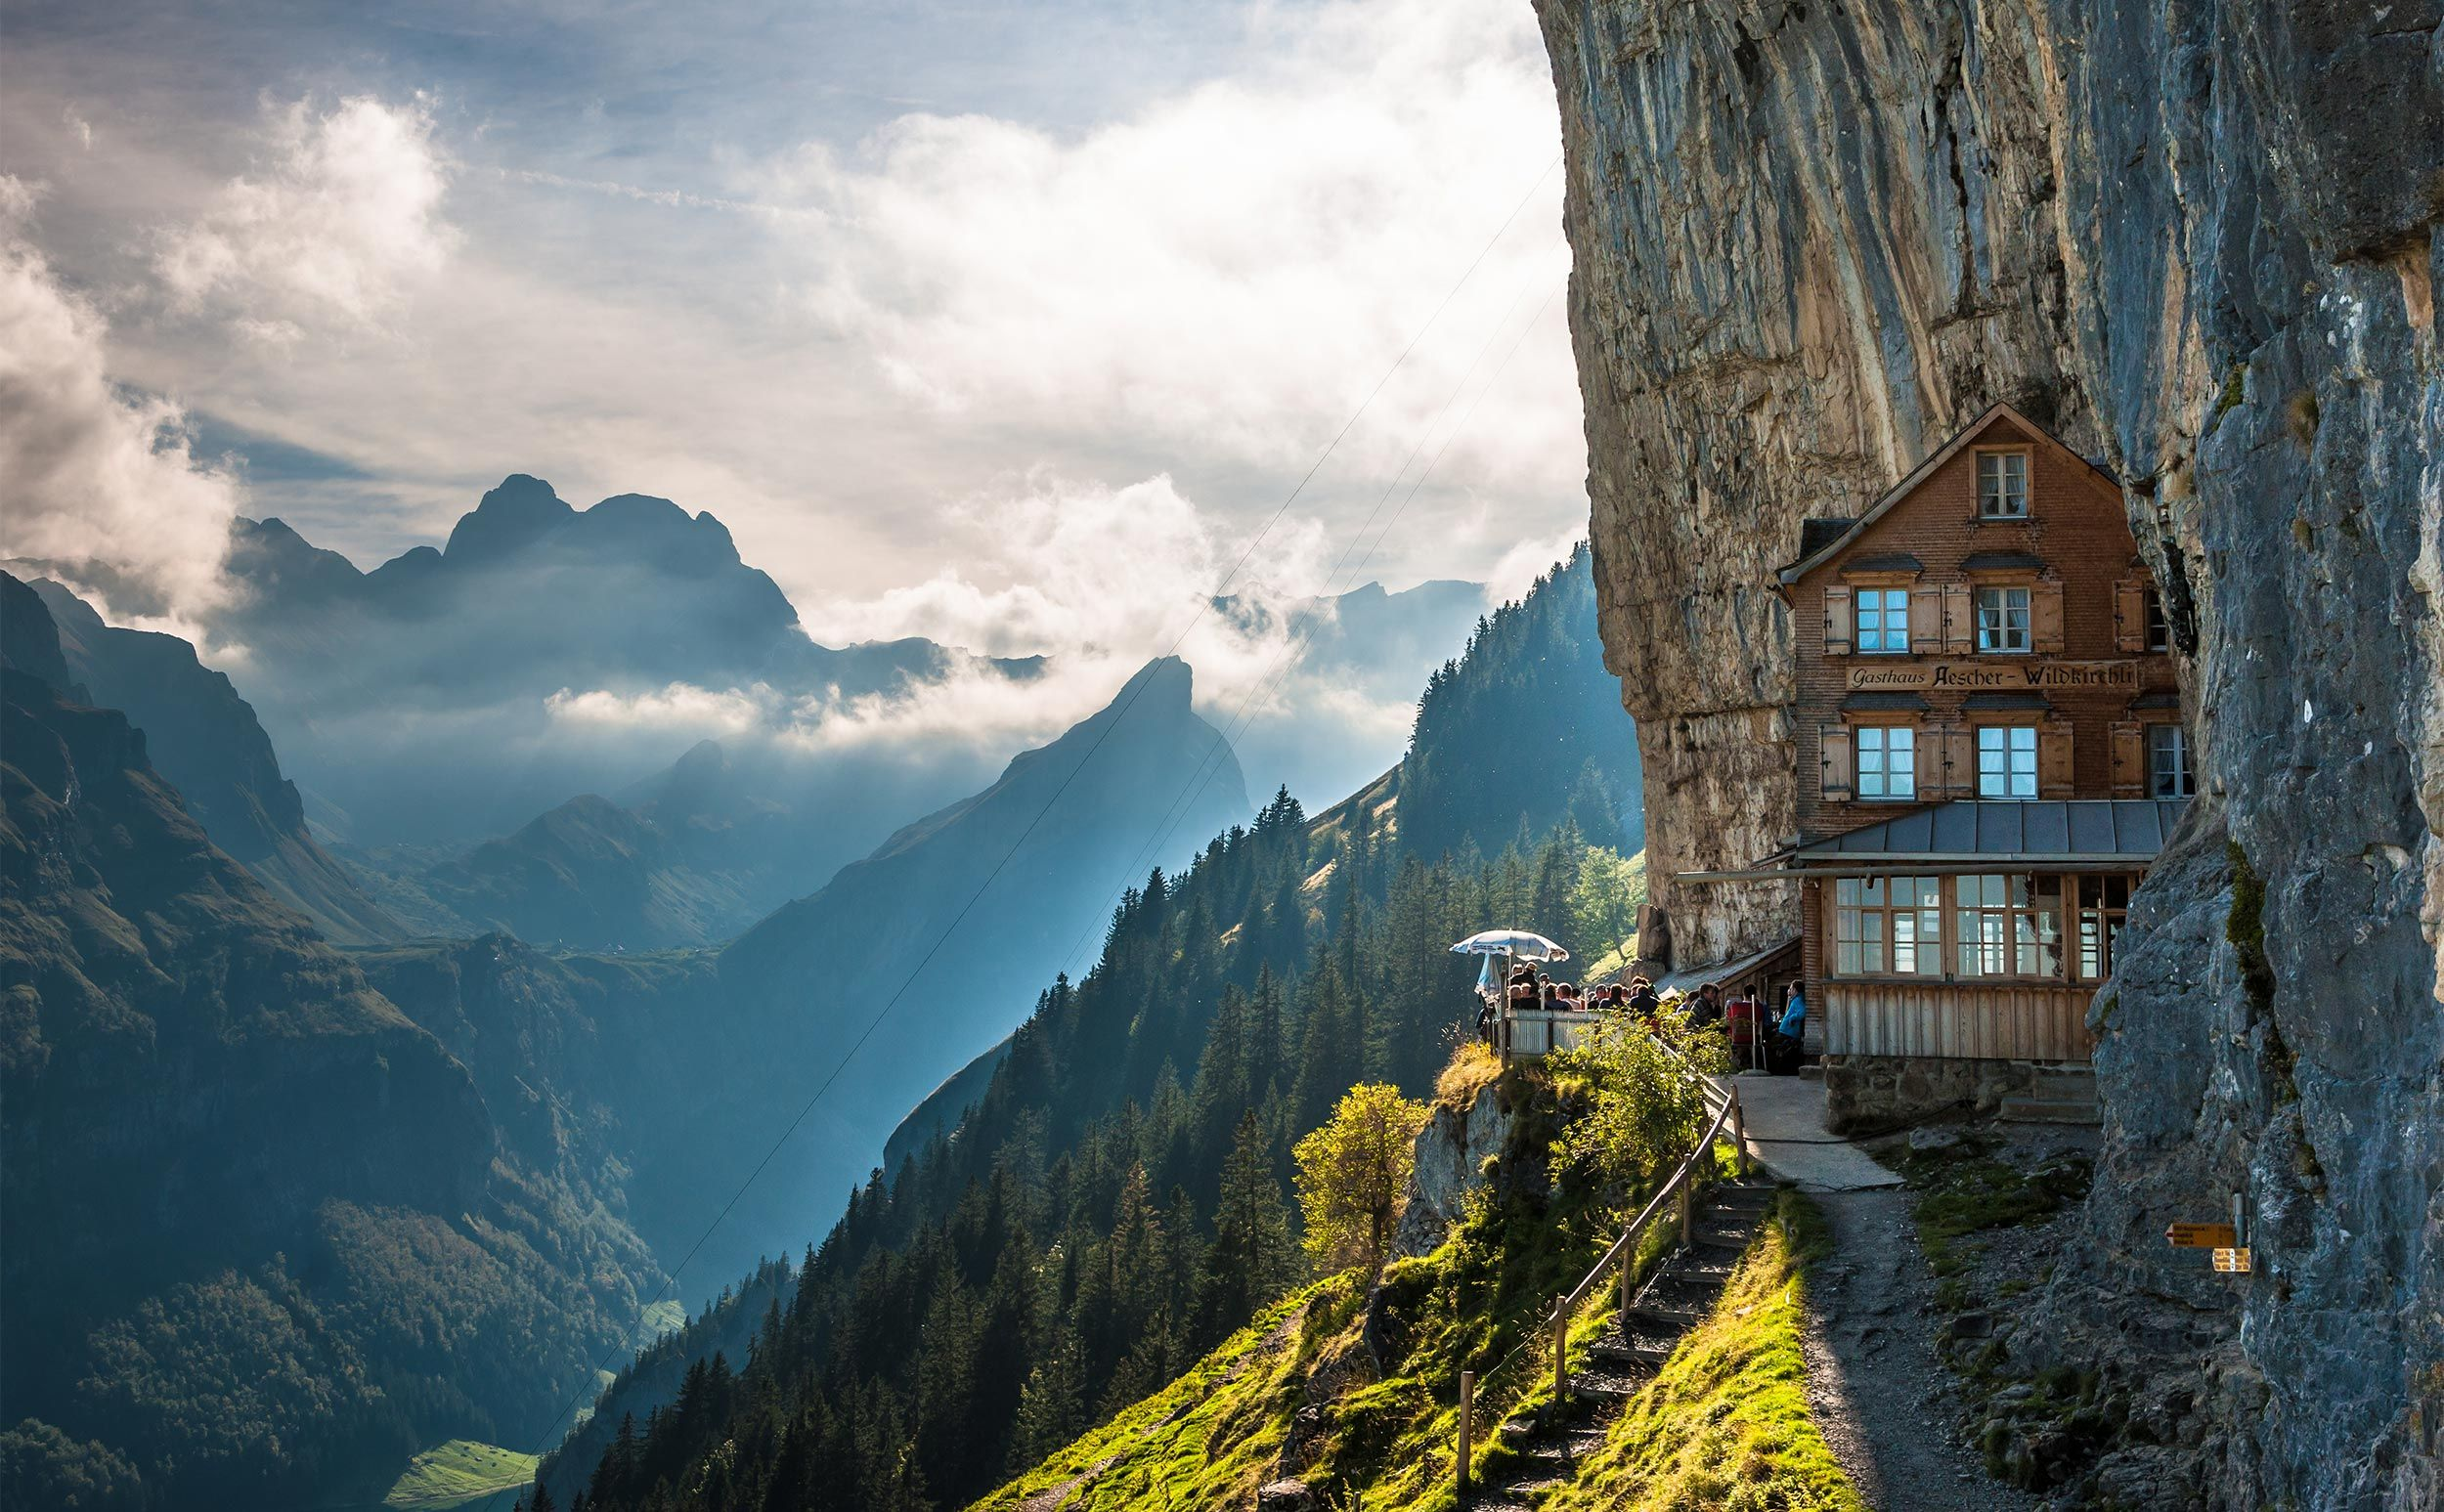 Nowhere Else In Switzerland Is The Change From The Hilly Landscape